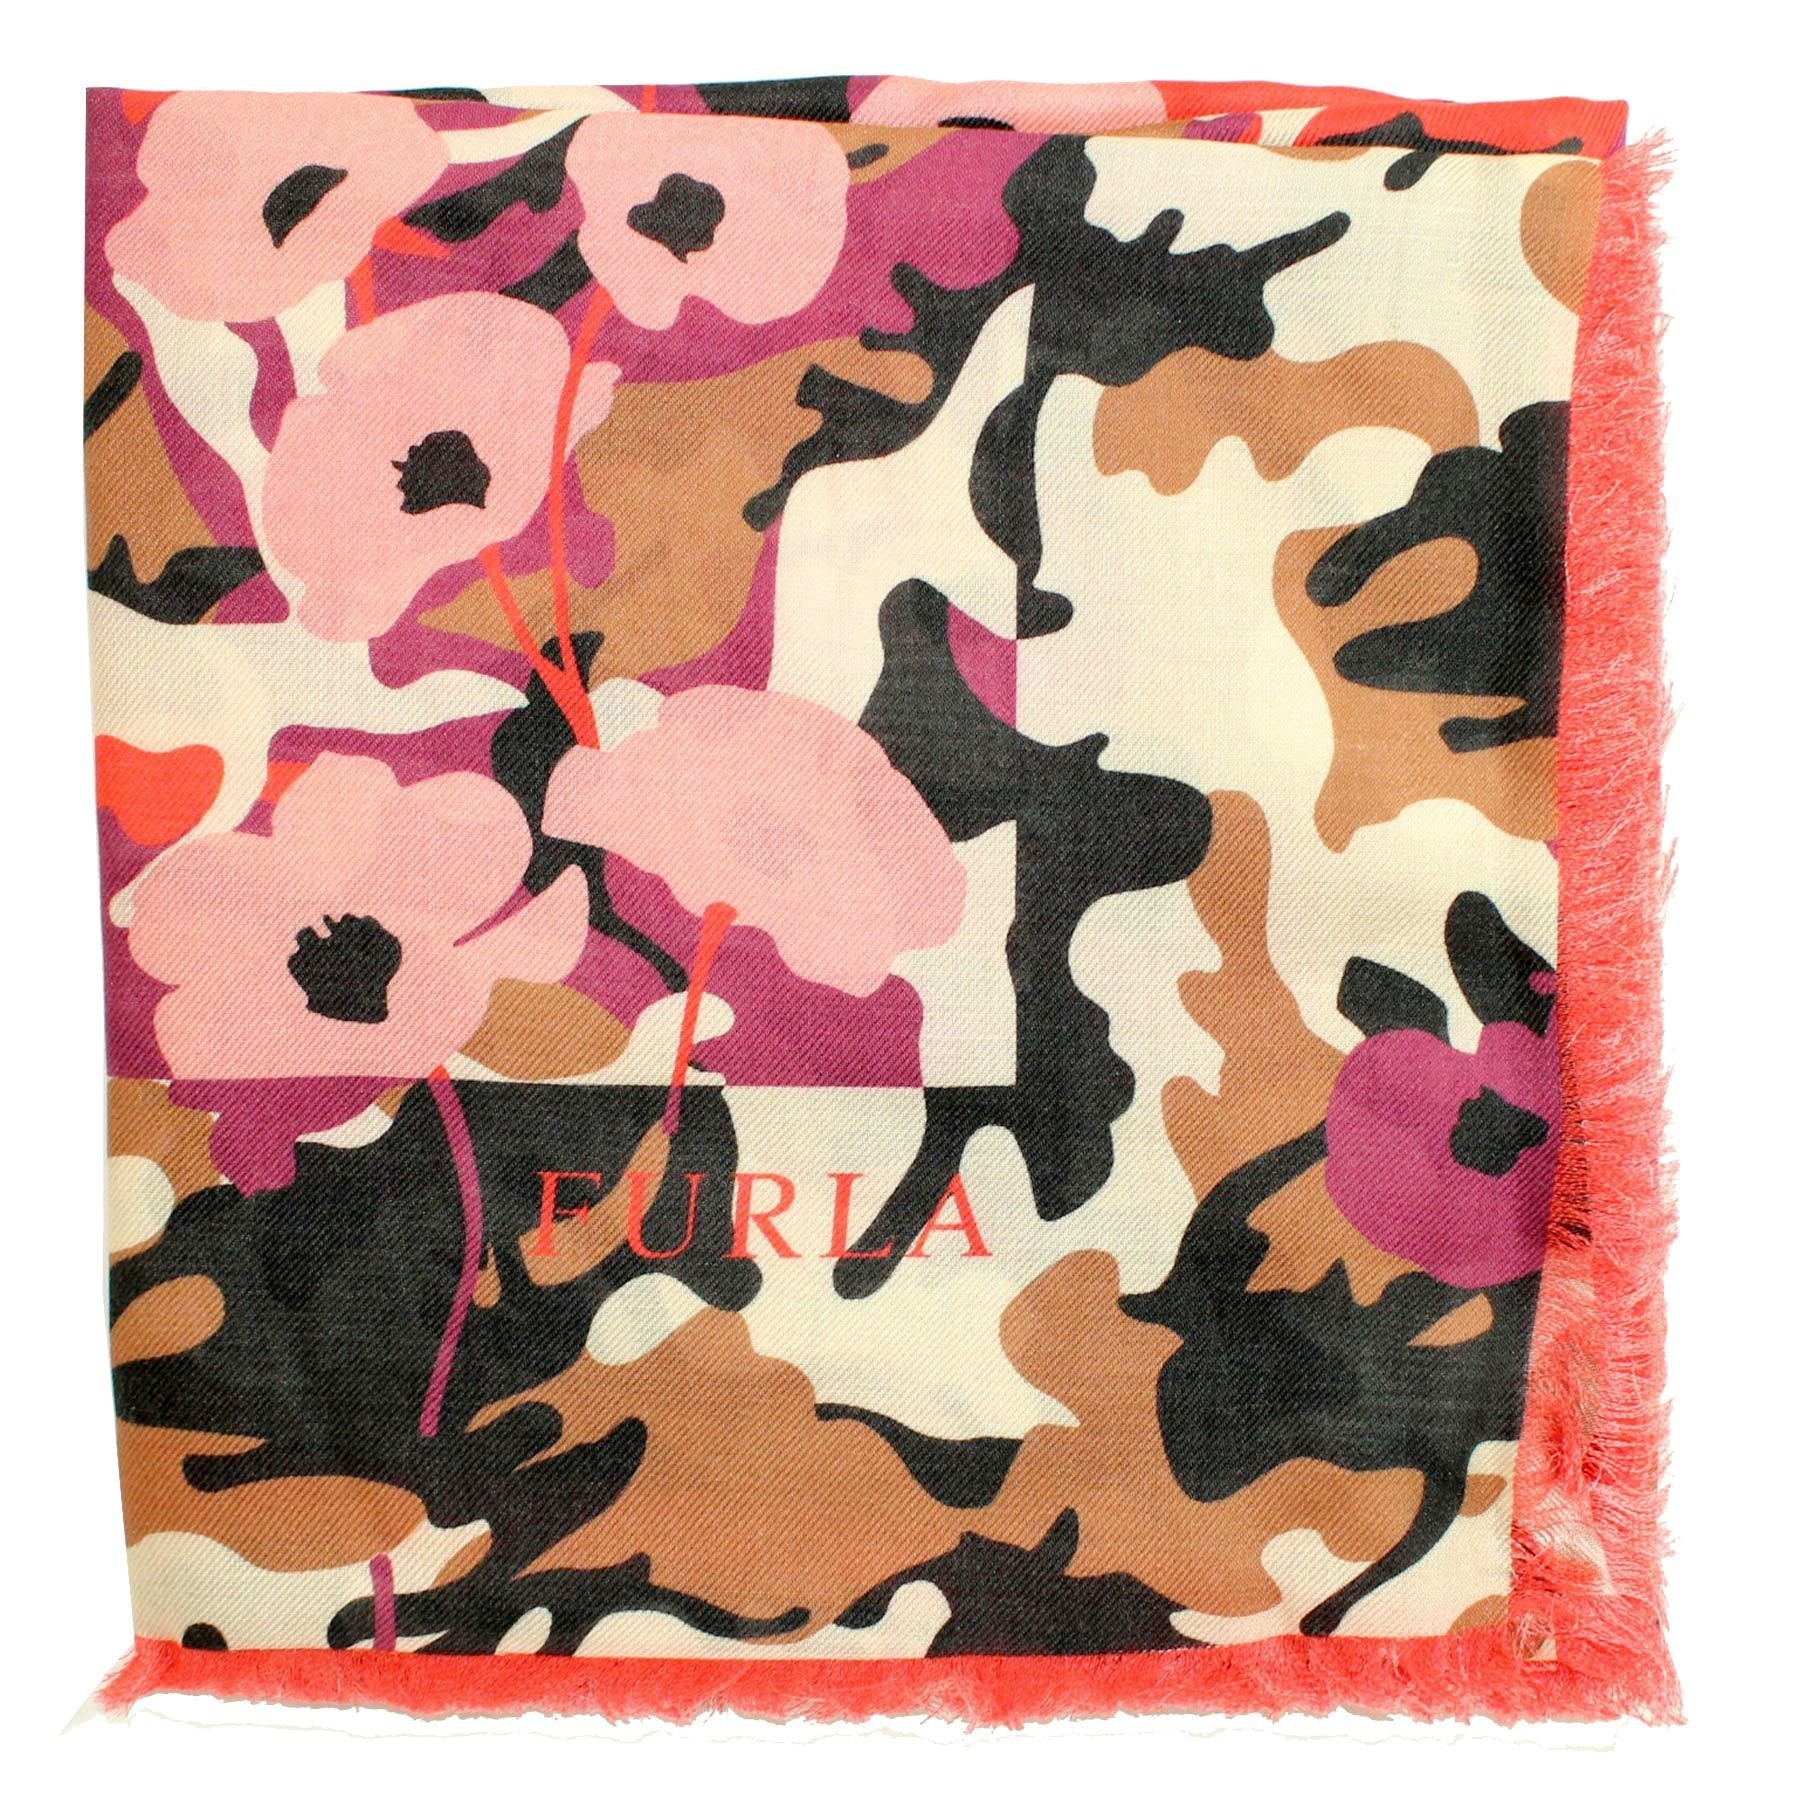 Furla Scarf Pink Camo Modal Extra Large Square Scarf